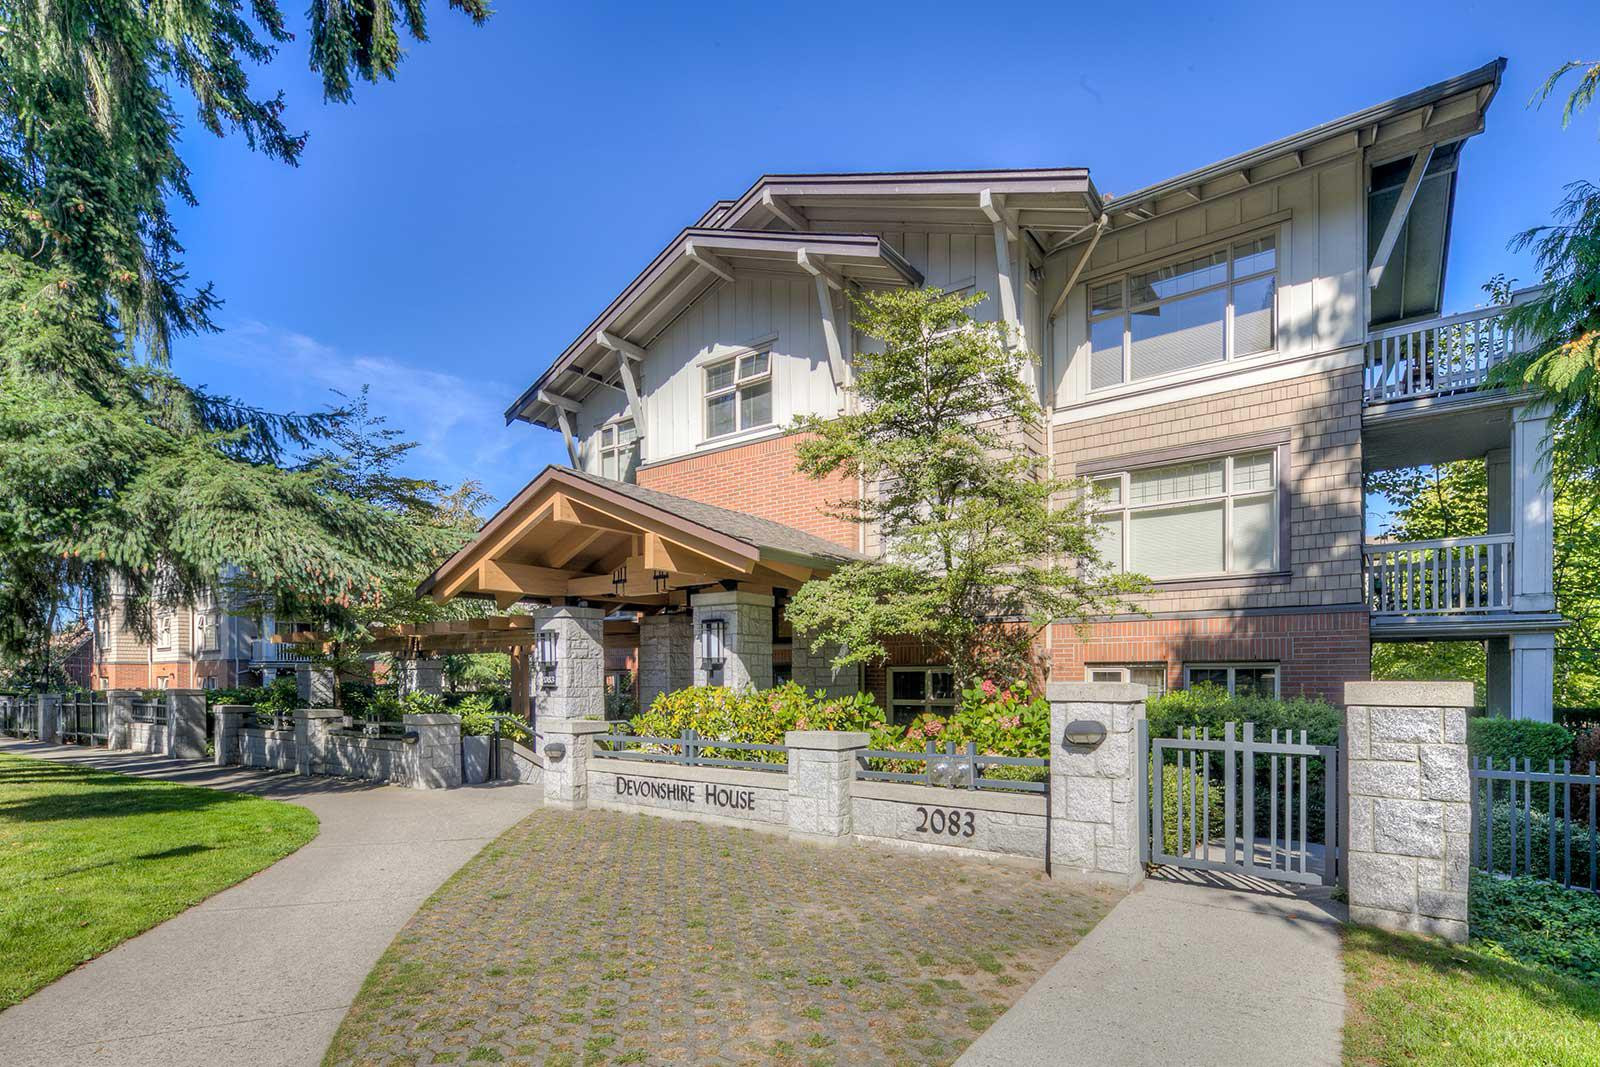 Devonshire House at 2083 W 33rd Ave, Vancouver 0